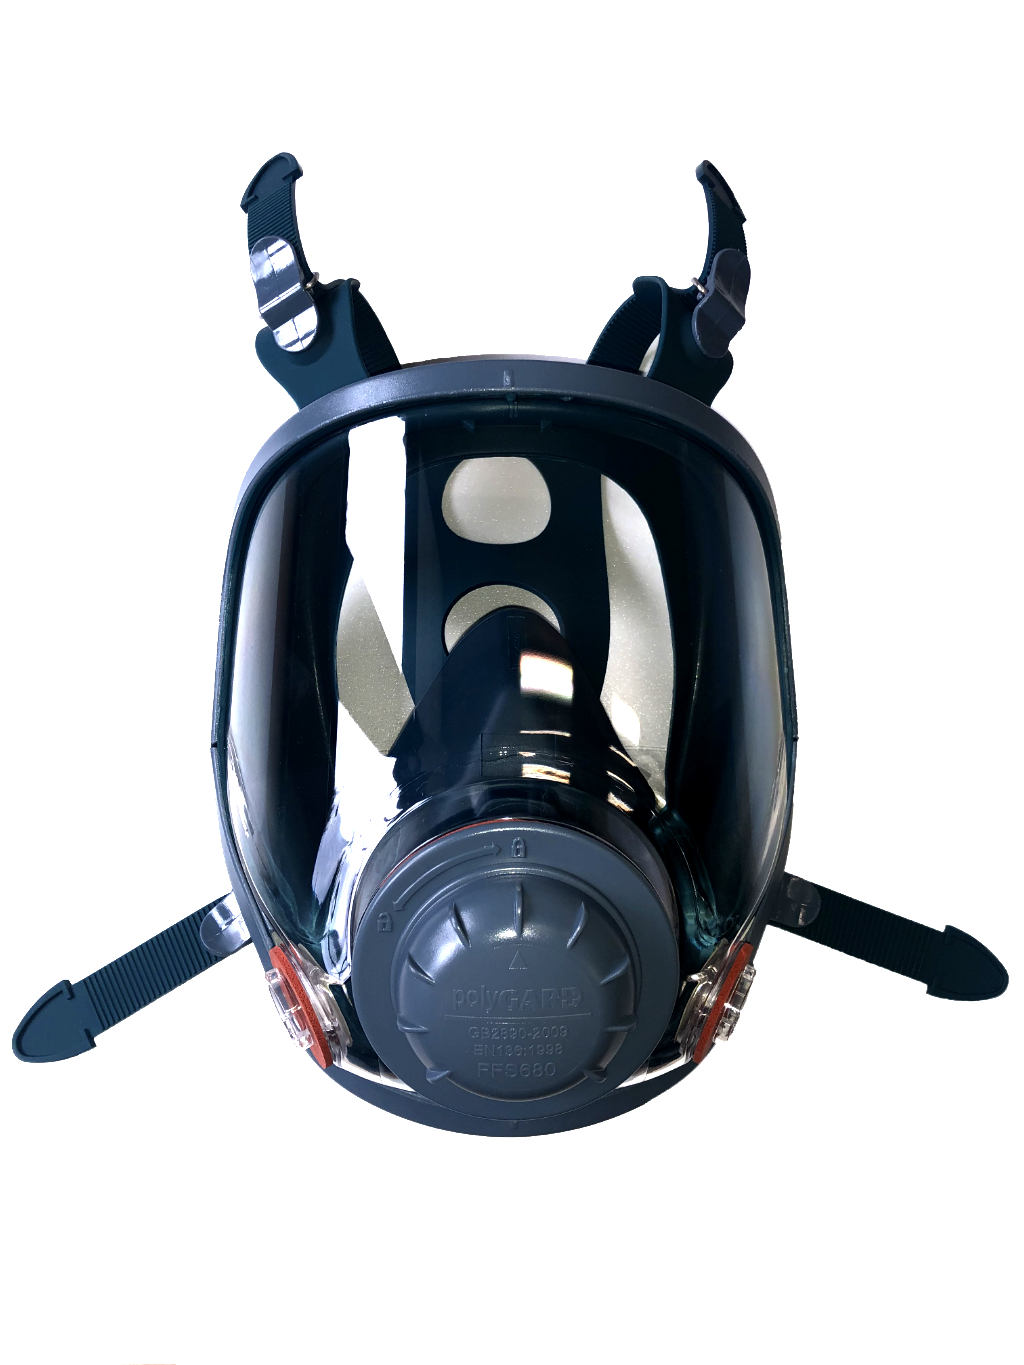 Full face mask FFS600 SERIES silicone body, class 2